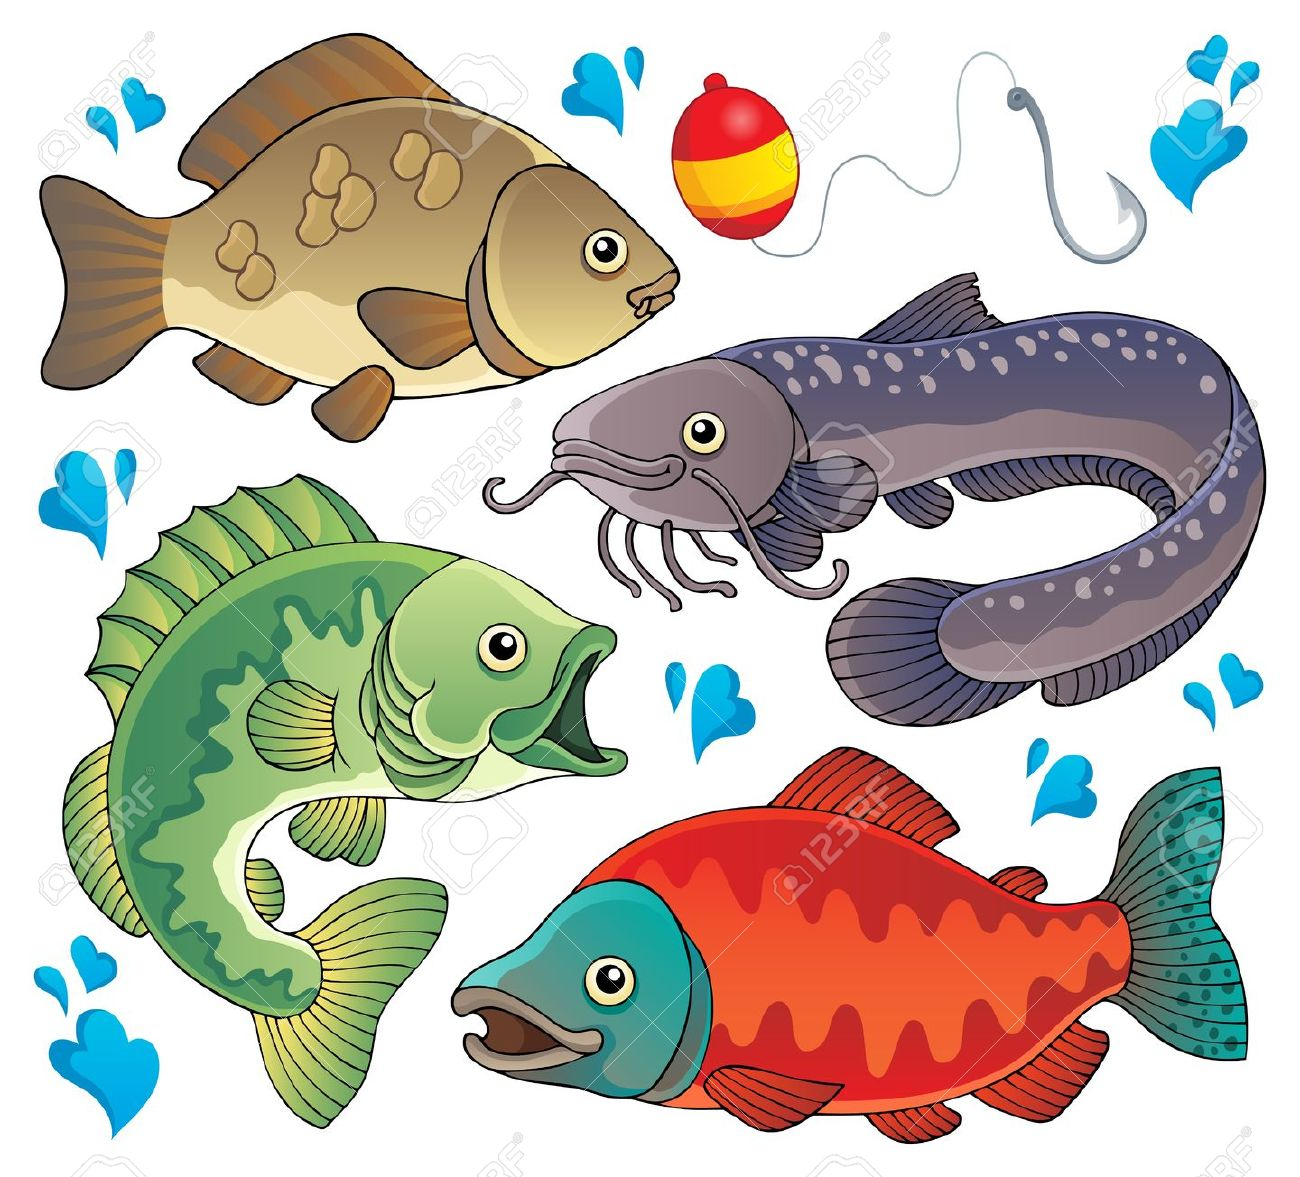 Fresh water fish clipart.